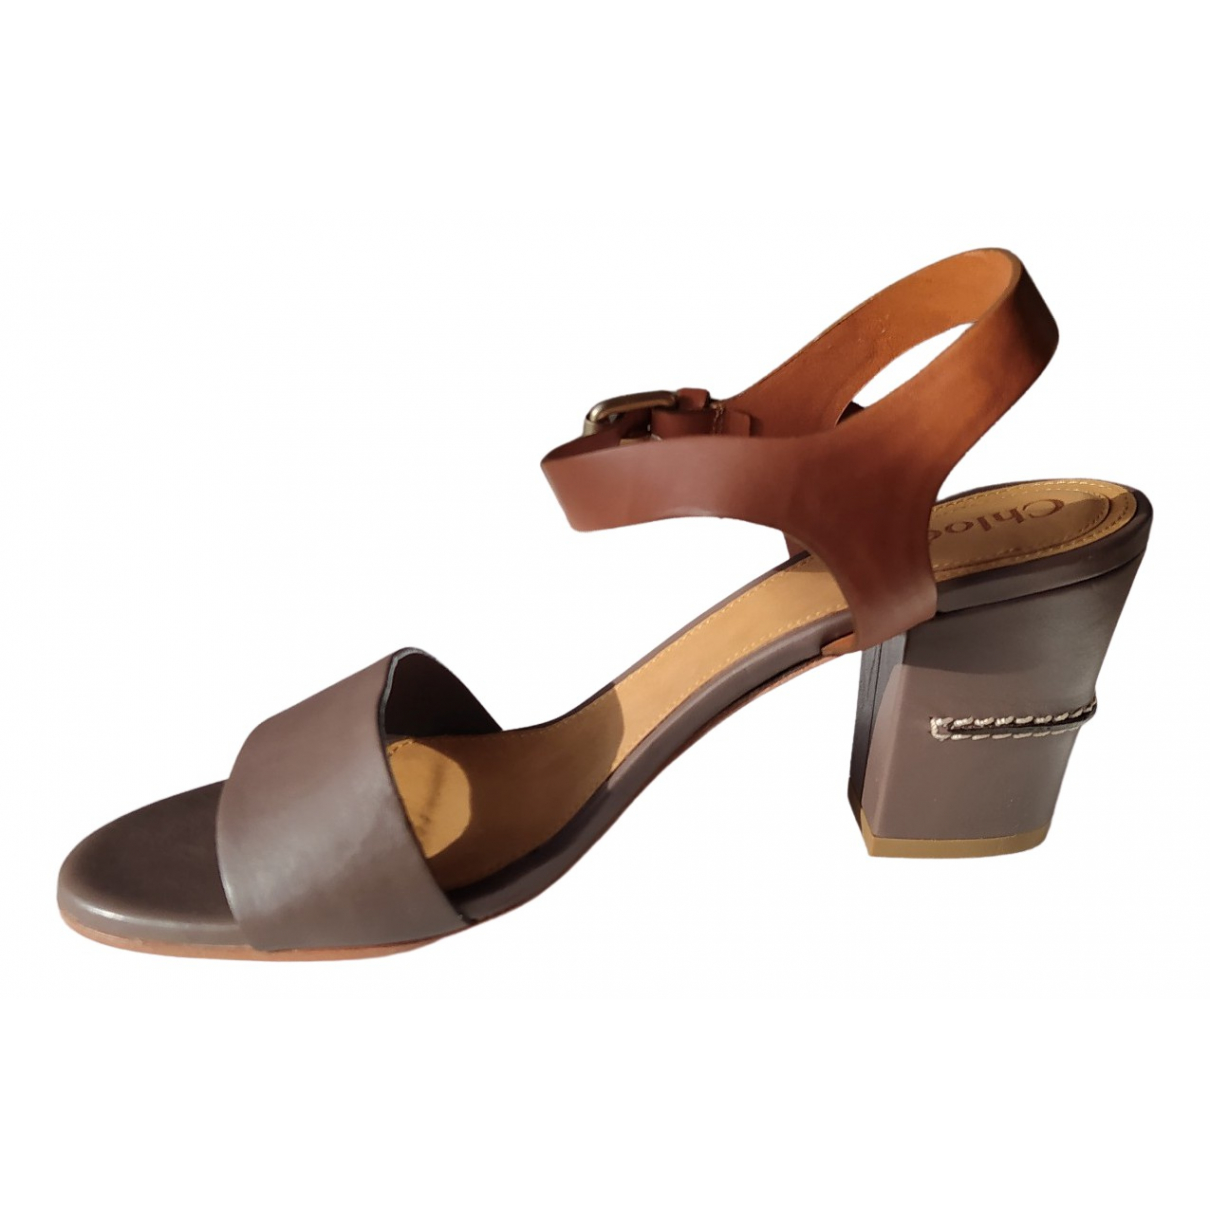 Chloé \N Brown Leather Sandals for Women 37.5 EU